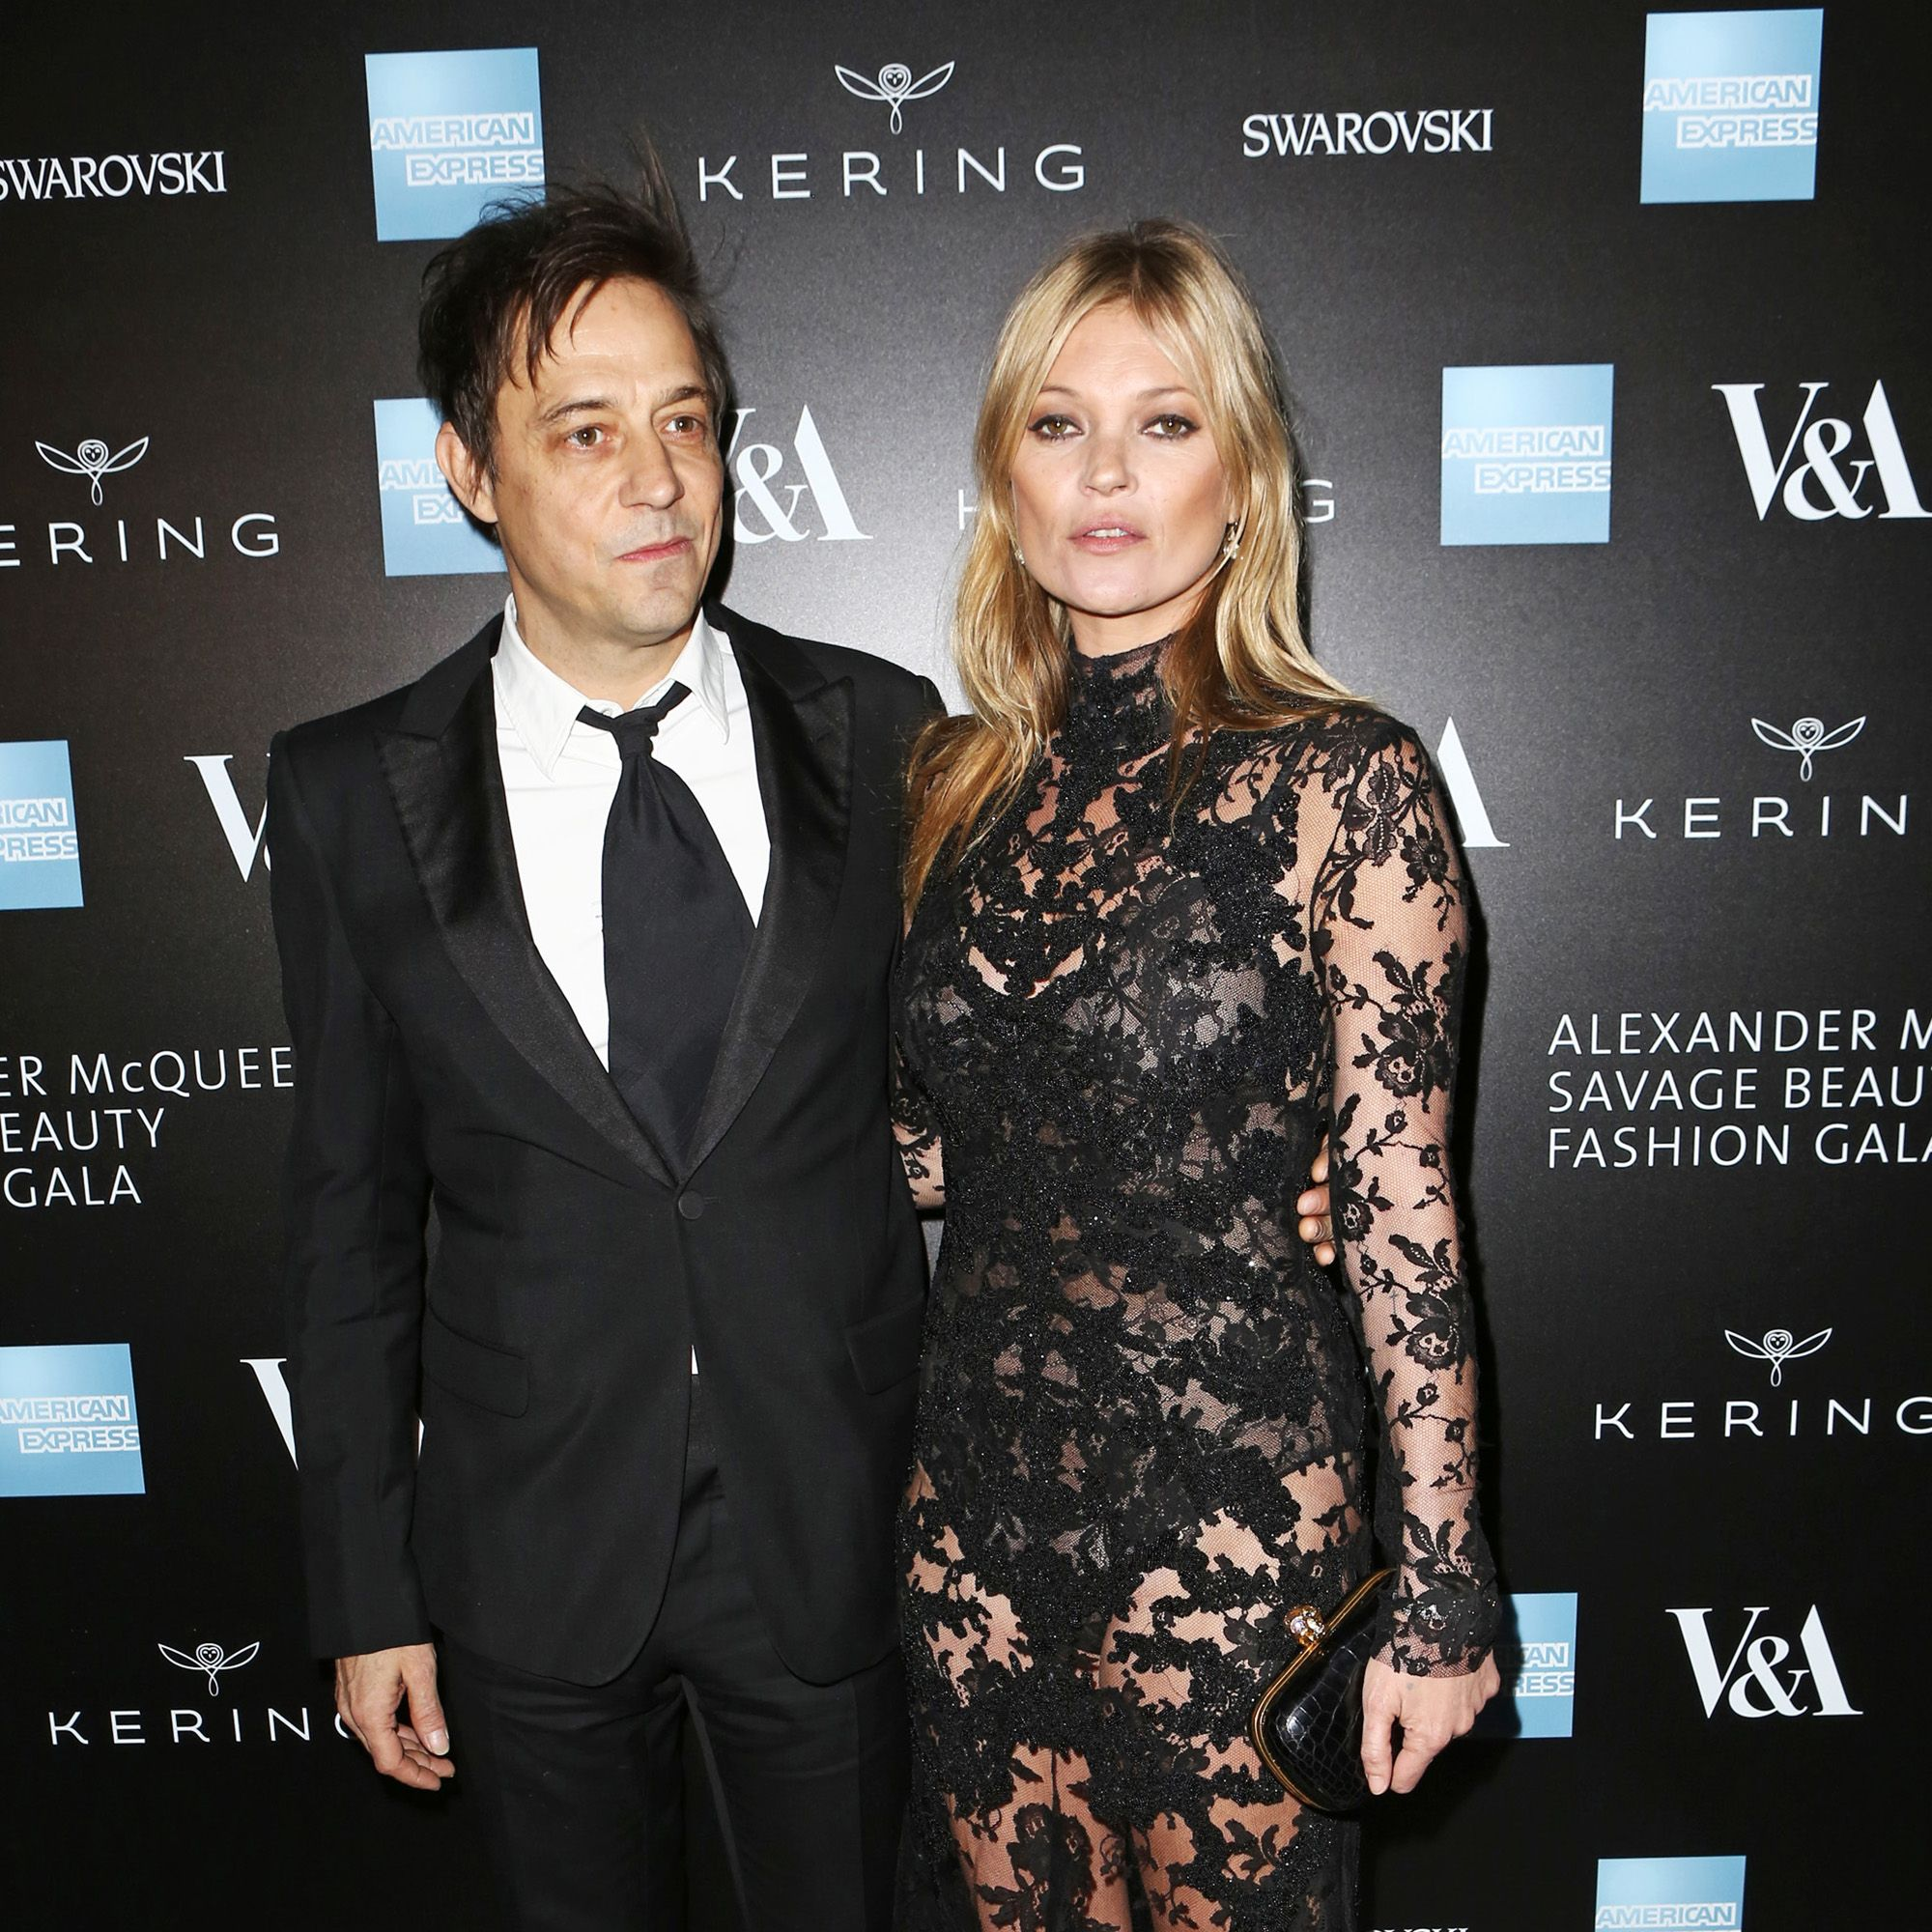 LONDON, ENGLAND - MARCH 12:  Jamie Hince (L) and Kate Moss arrive at the Alexander McQueen: Savage Beauty Fashion Gala at the V&amp&#x3B;A, presented by American Express and Kering on March 12, 2015 in London, England.  (Photo by David M. Benett/Getty Images for Victoria and Albert Museum)